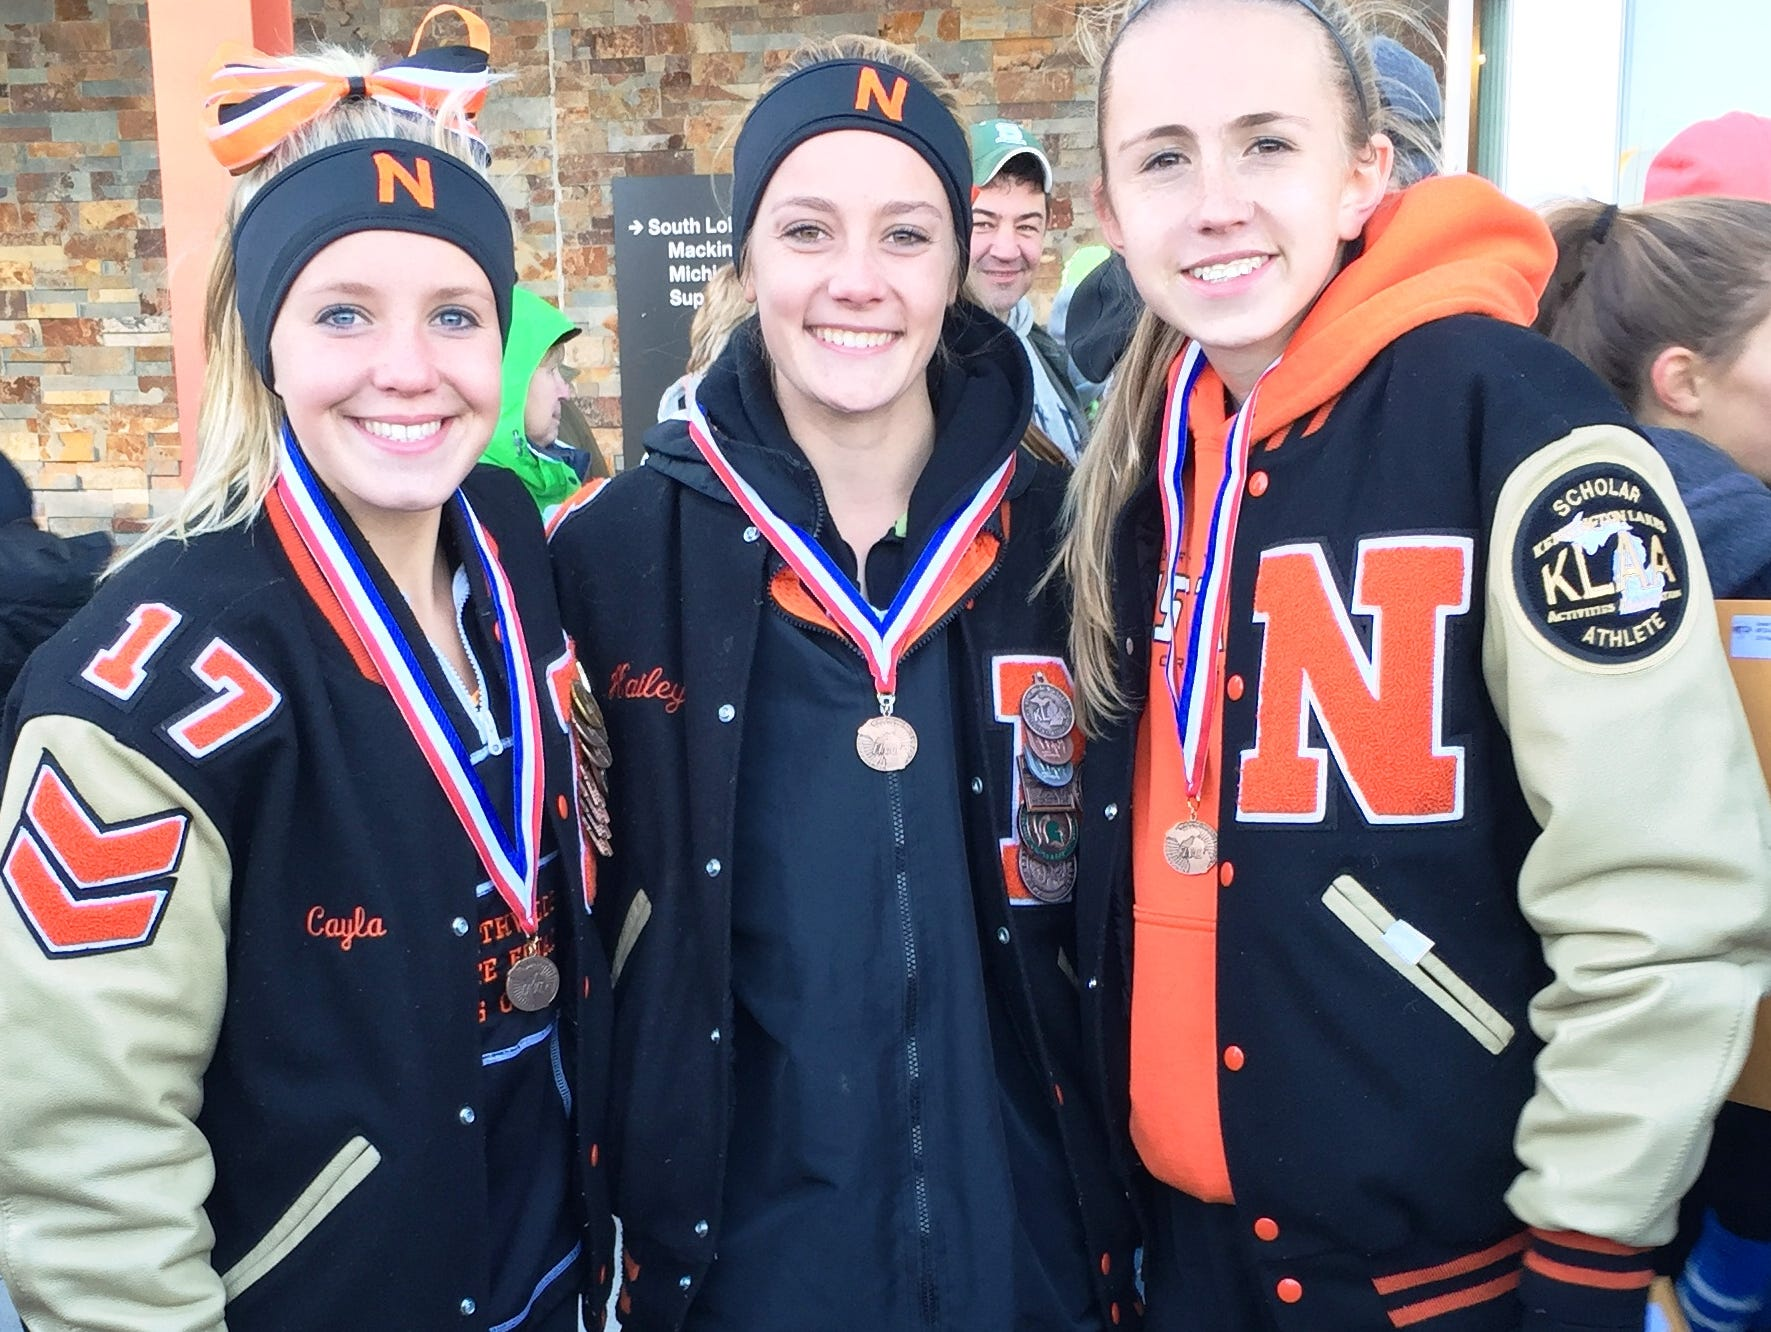 Northville's Cayla Eckenroth (from left), Hailey Harris and Lexa Barrott earned Division 1 cross country all-state honors Saturday at MIS.